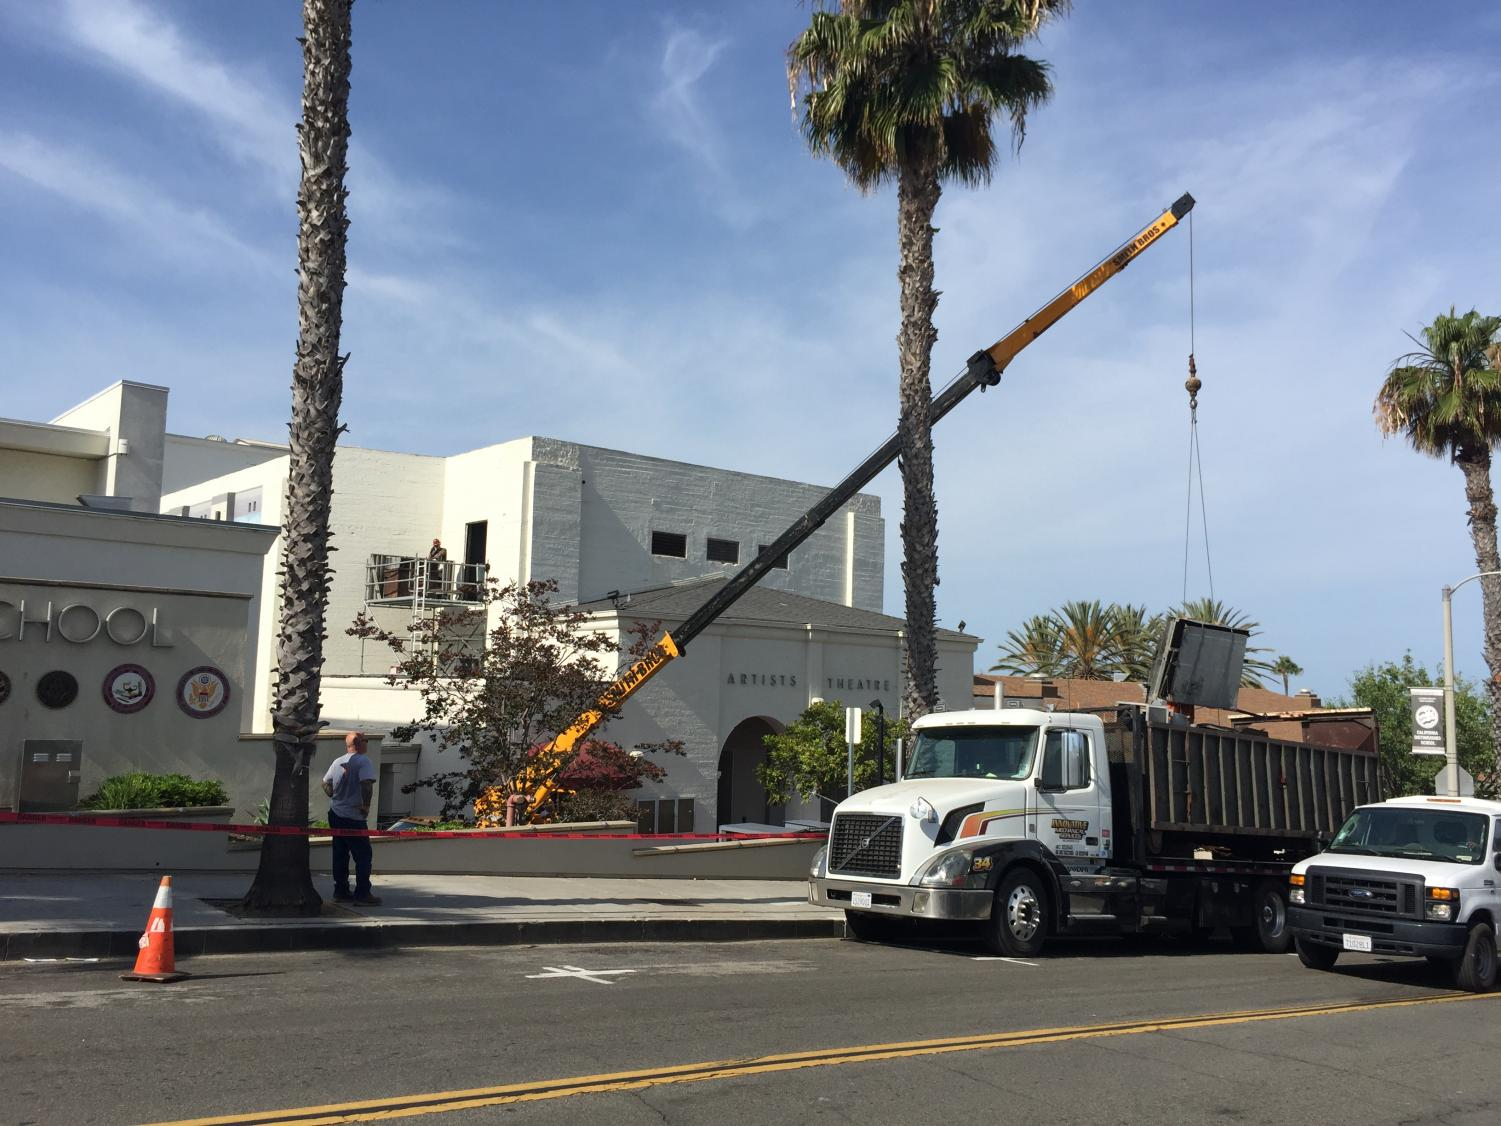 Construction crews use crane to place AC units on the theatre roof.